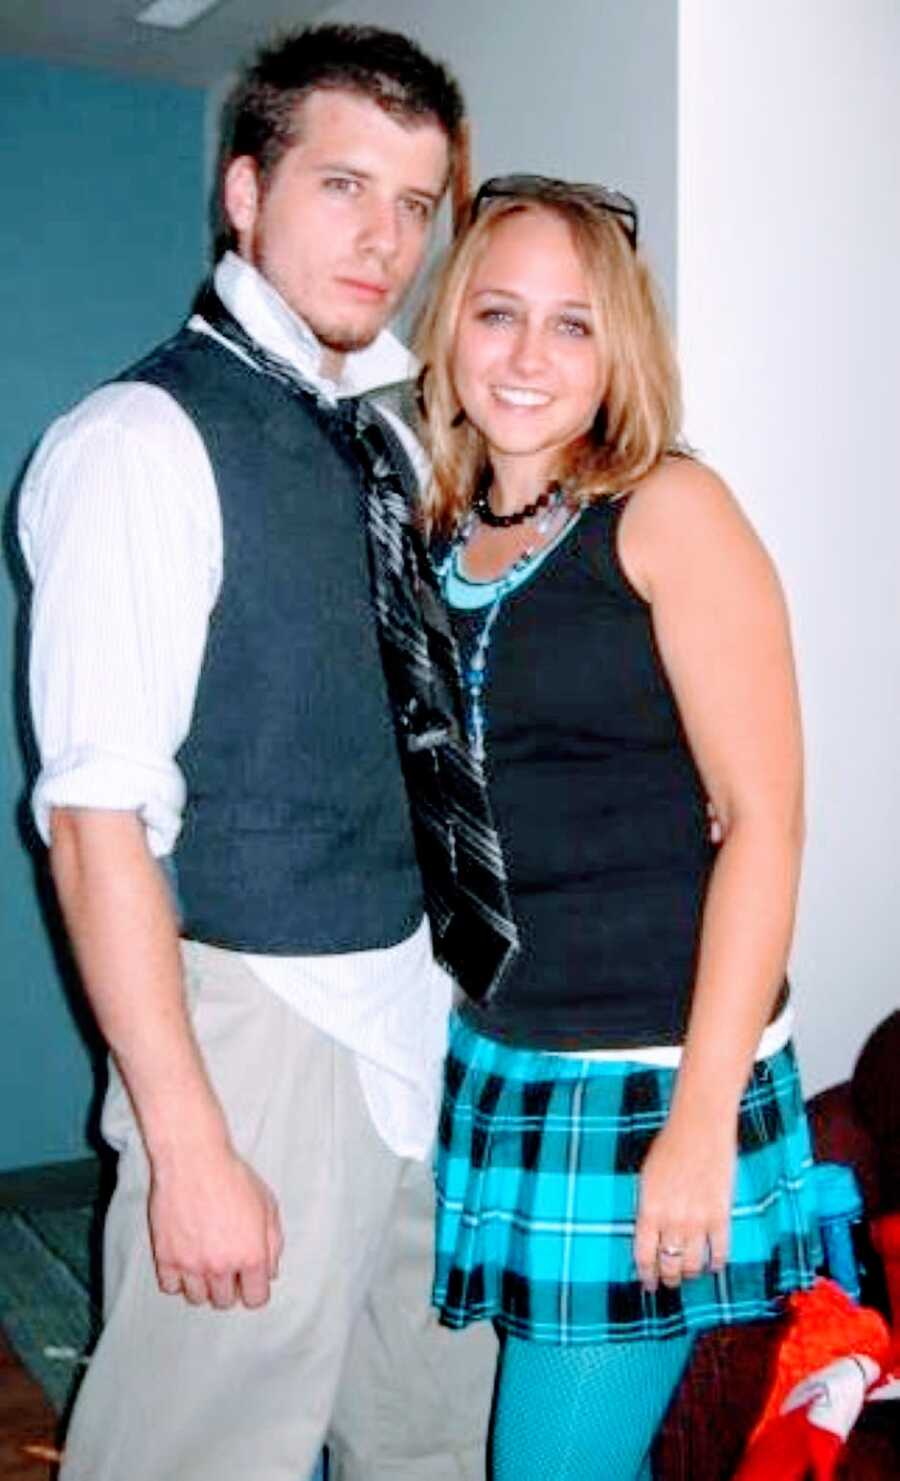 Young college sweethearts take a silly photo together, wearing matching ties